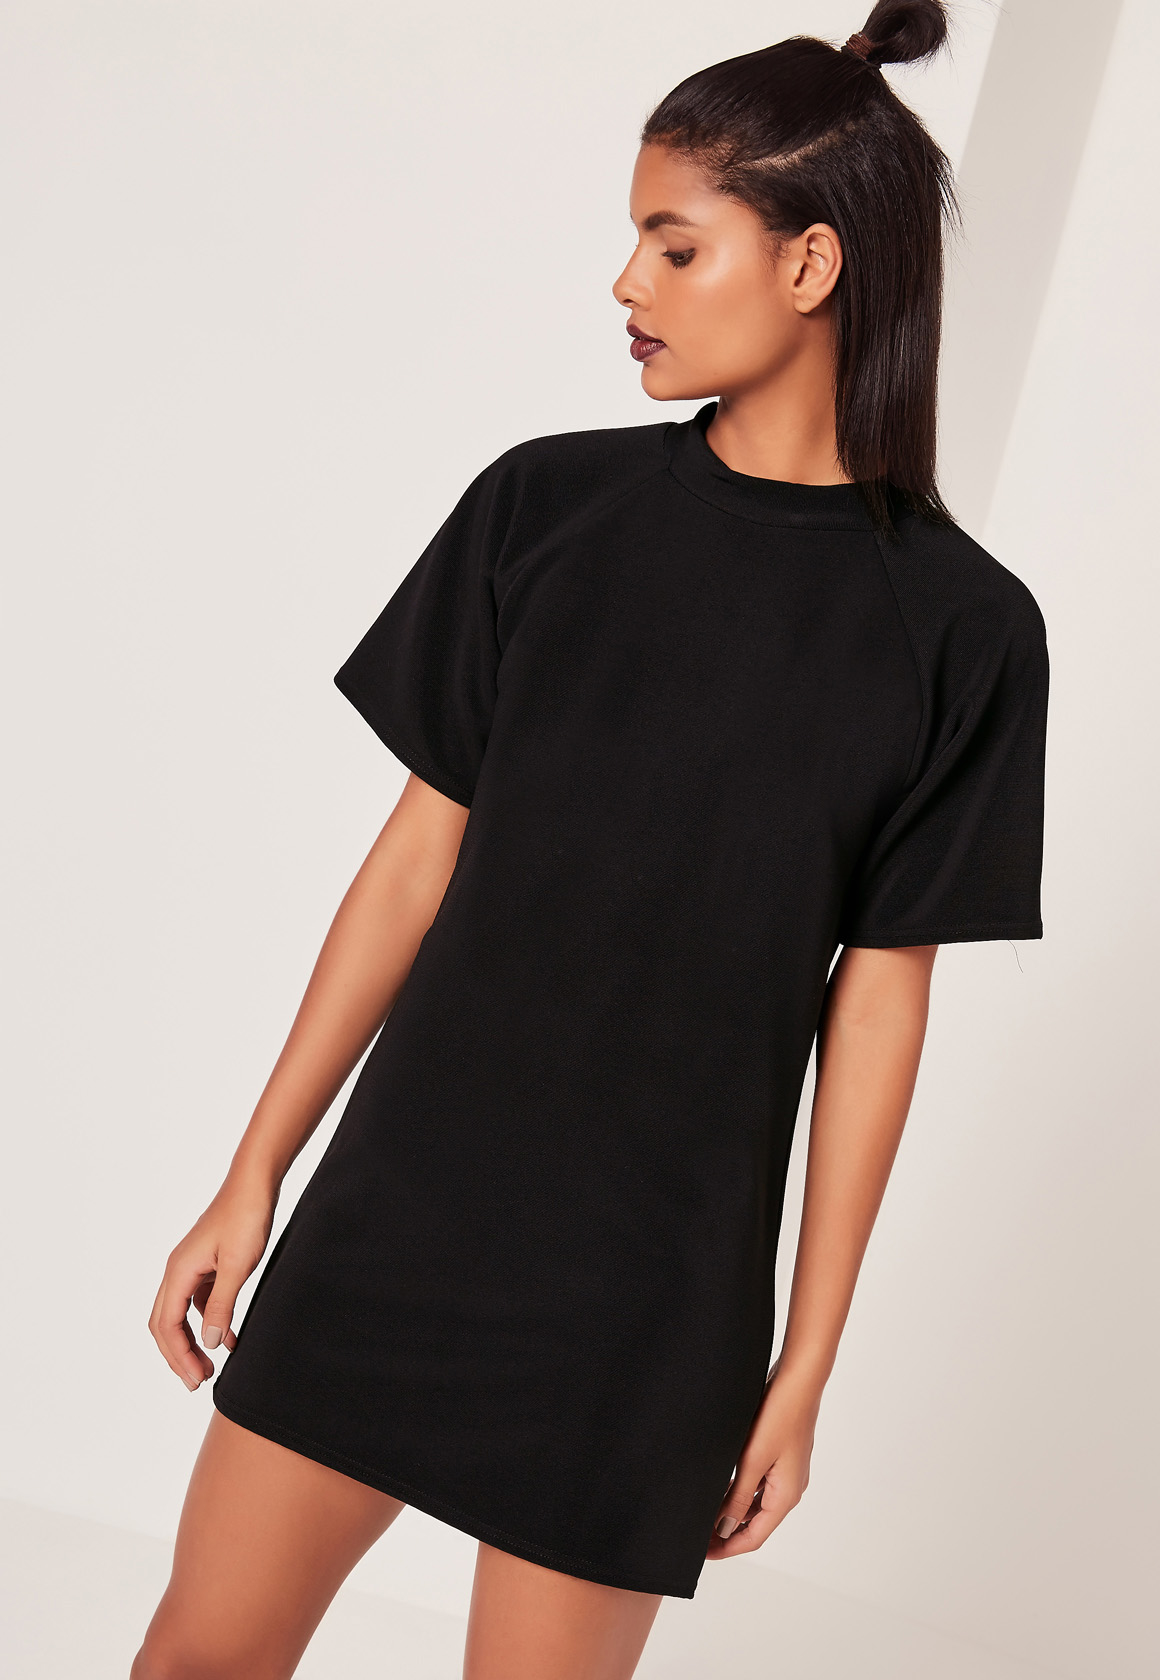 Missguided Short Sleeve Oversized T-shirt Dress Black in ...